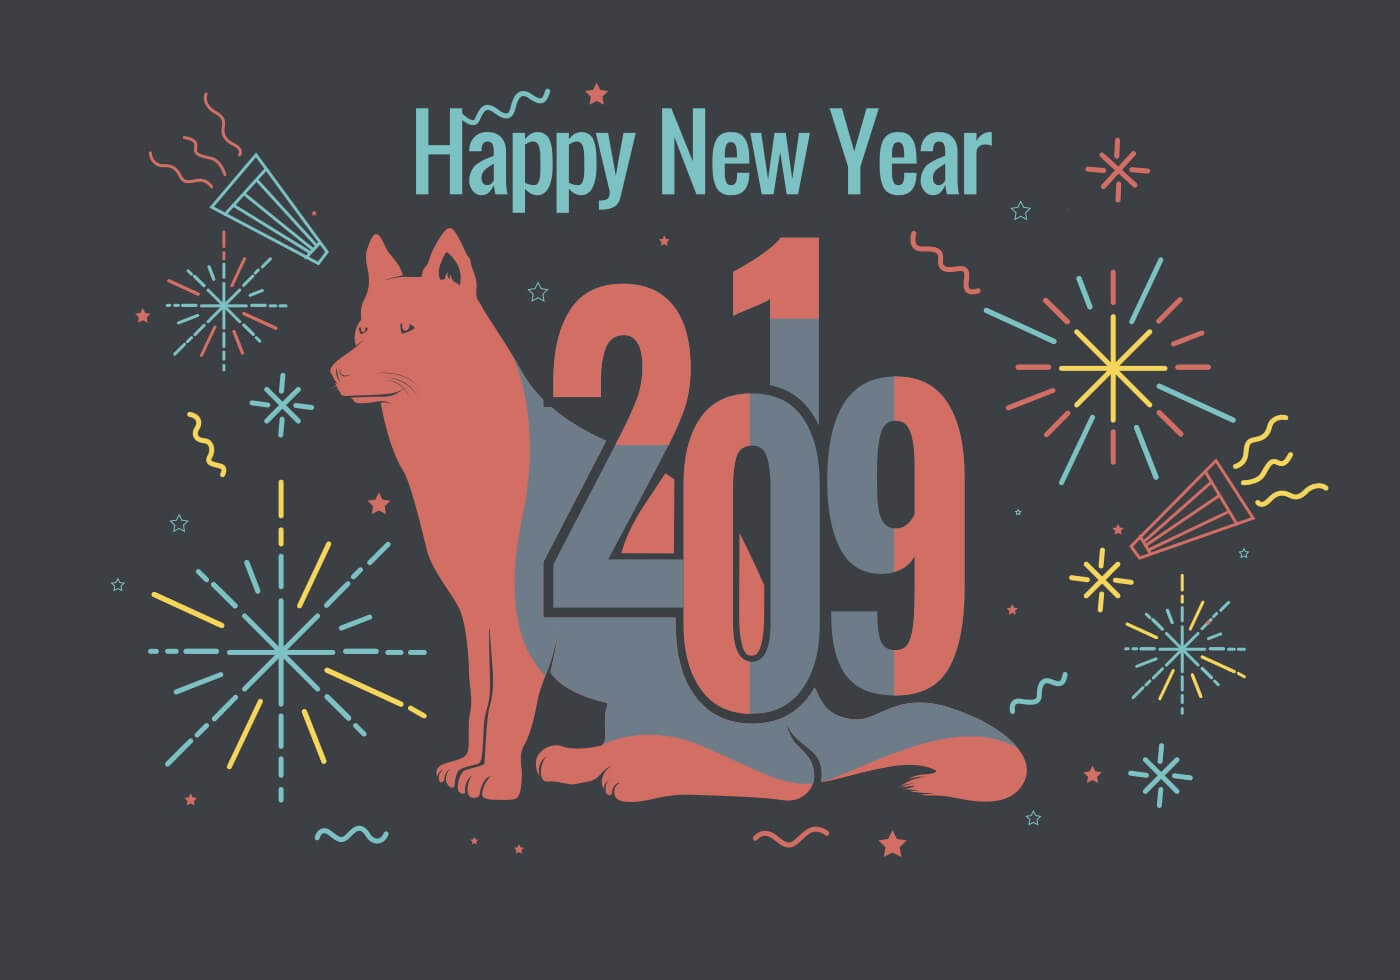 Funny Happy New Year 2019 Wallpapers